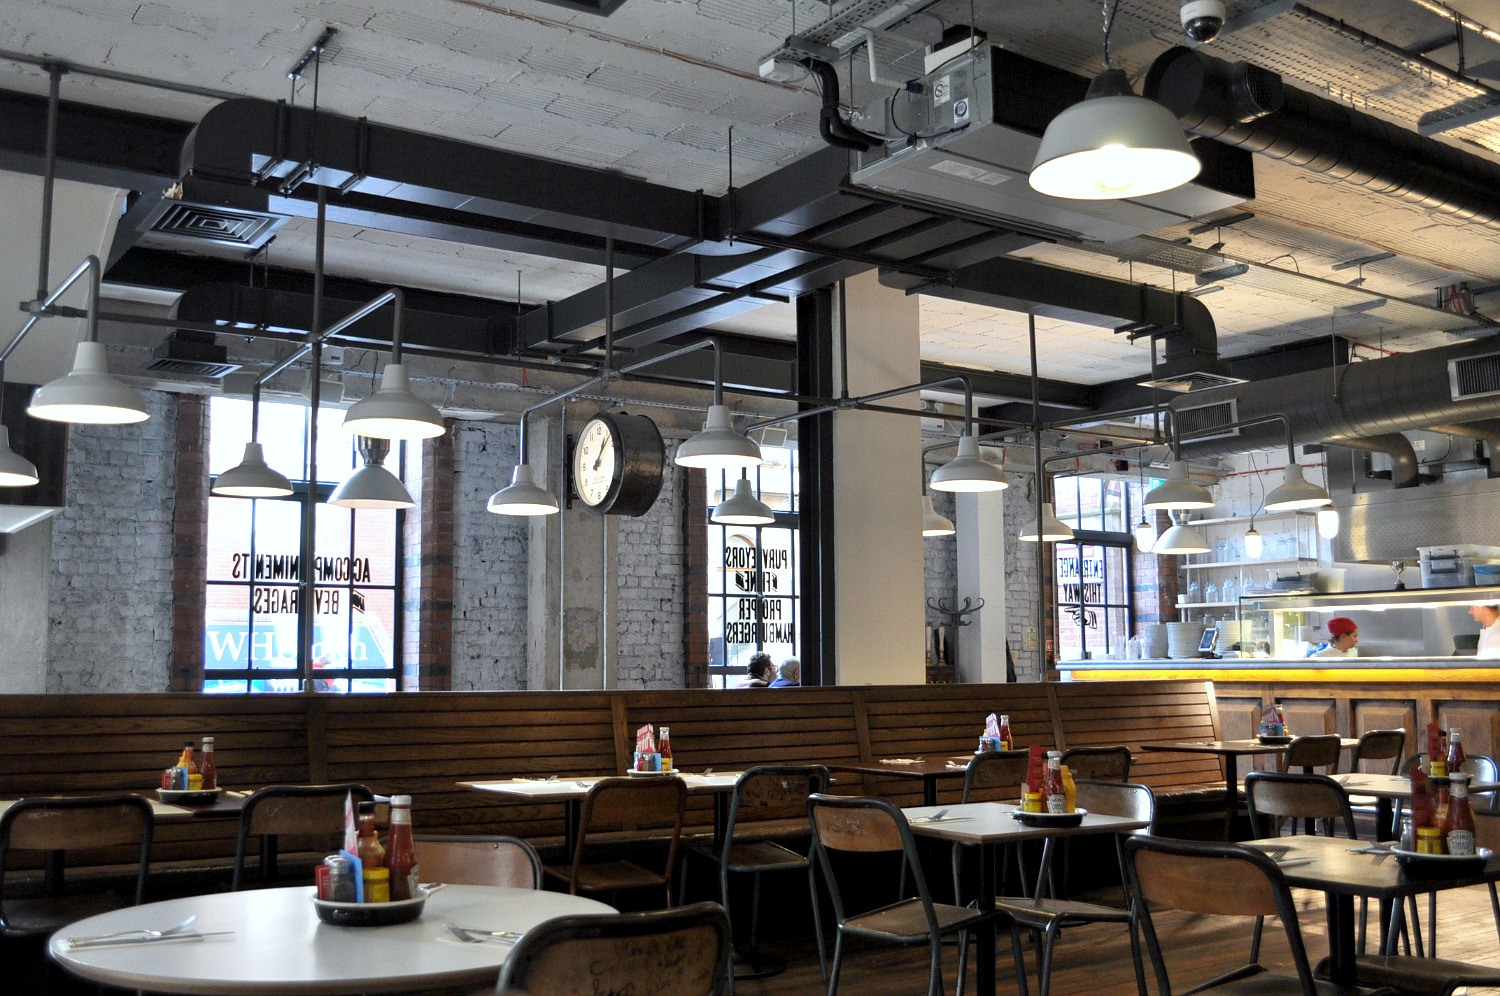 INDUSTRIAL INTERIOR INSPIRATION BYRON MINI DATE WILD GRIZZLY